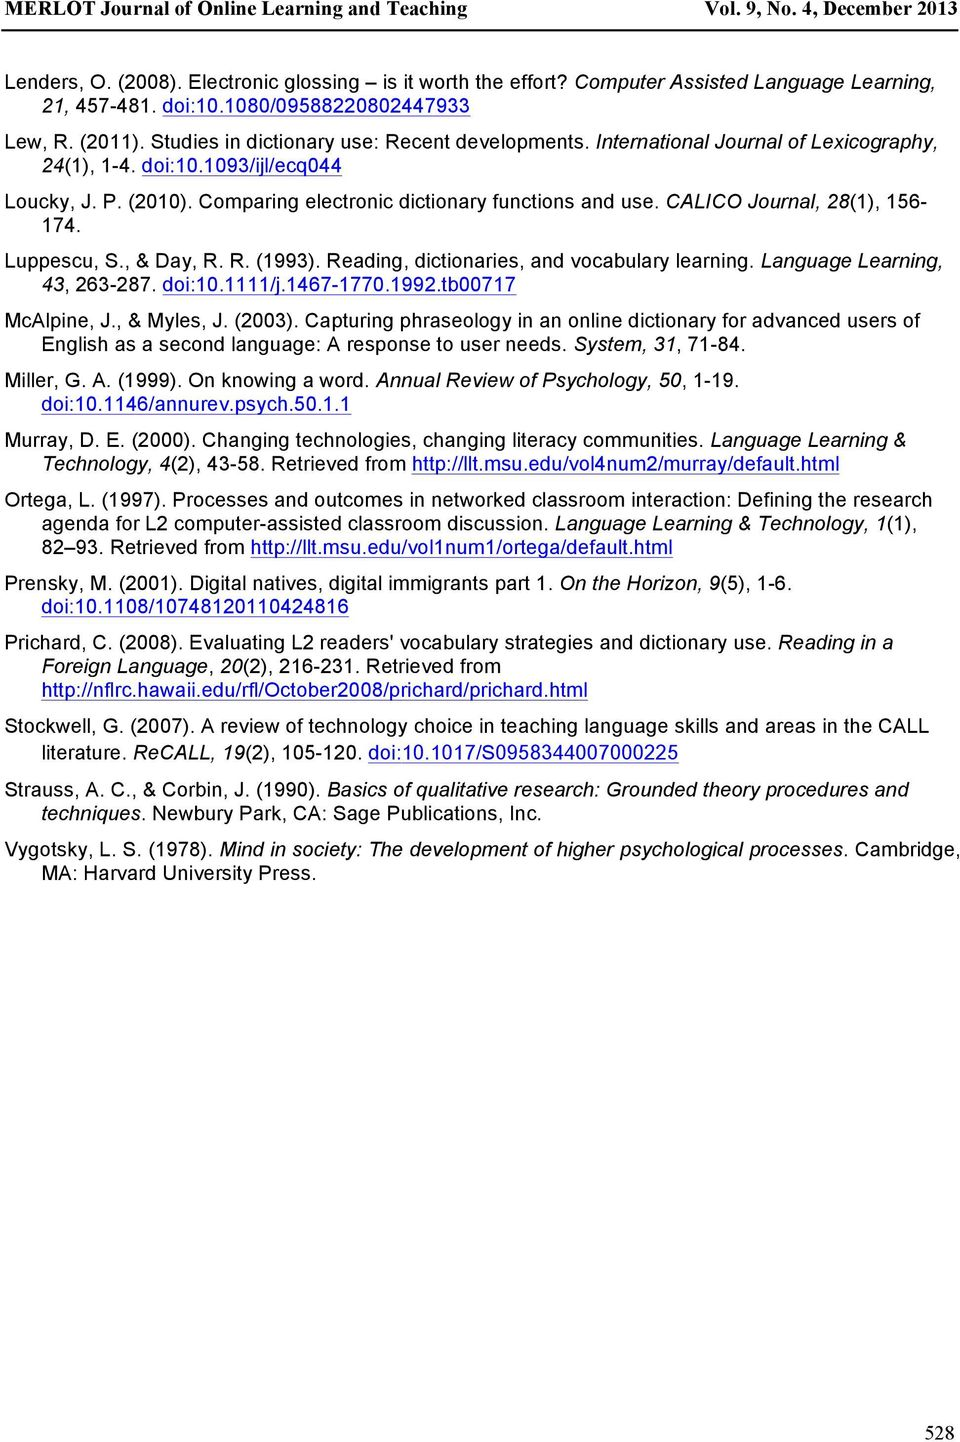 CALICO Journal, 28(1), 156-174. Luppescu, S., & Day, R. R. (1993). Reading, dictionaries, and vocabulary learning. Language Learning, 43, 263-287. doi:10.1111/j.1467-1770.1992.tb00717 McAlpine, J.